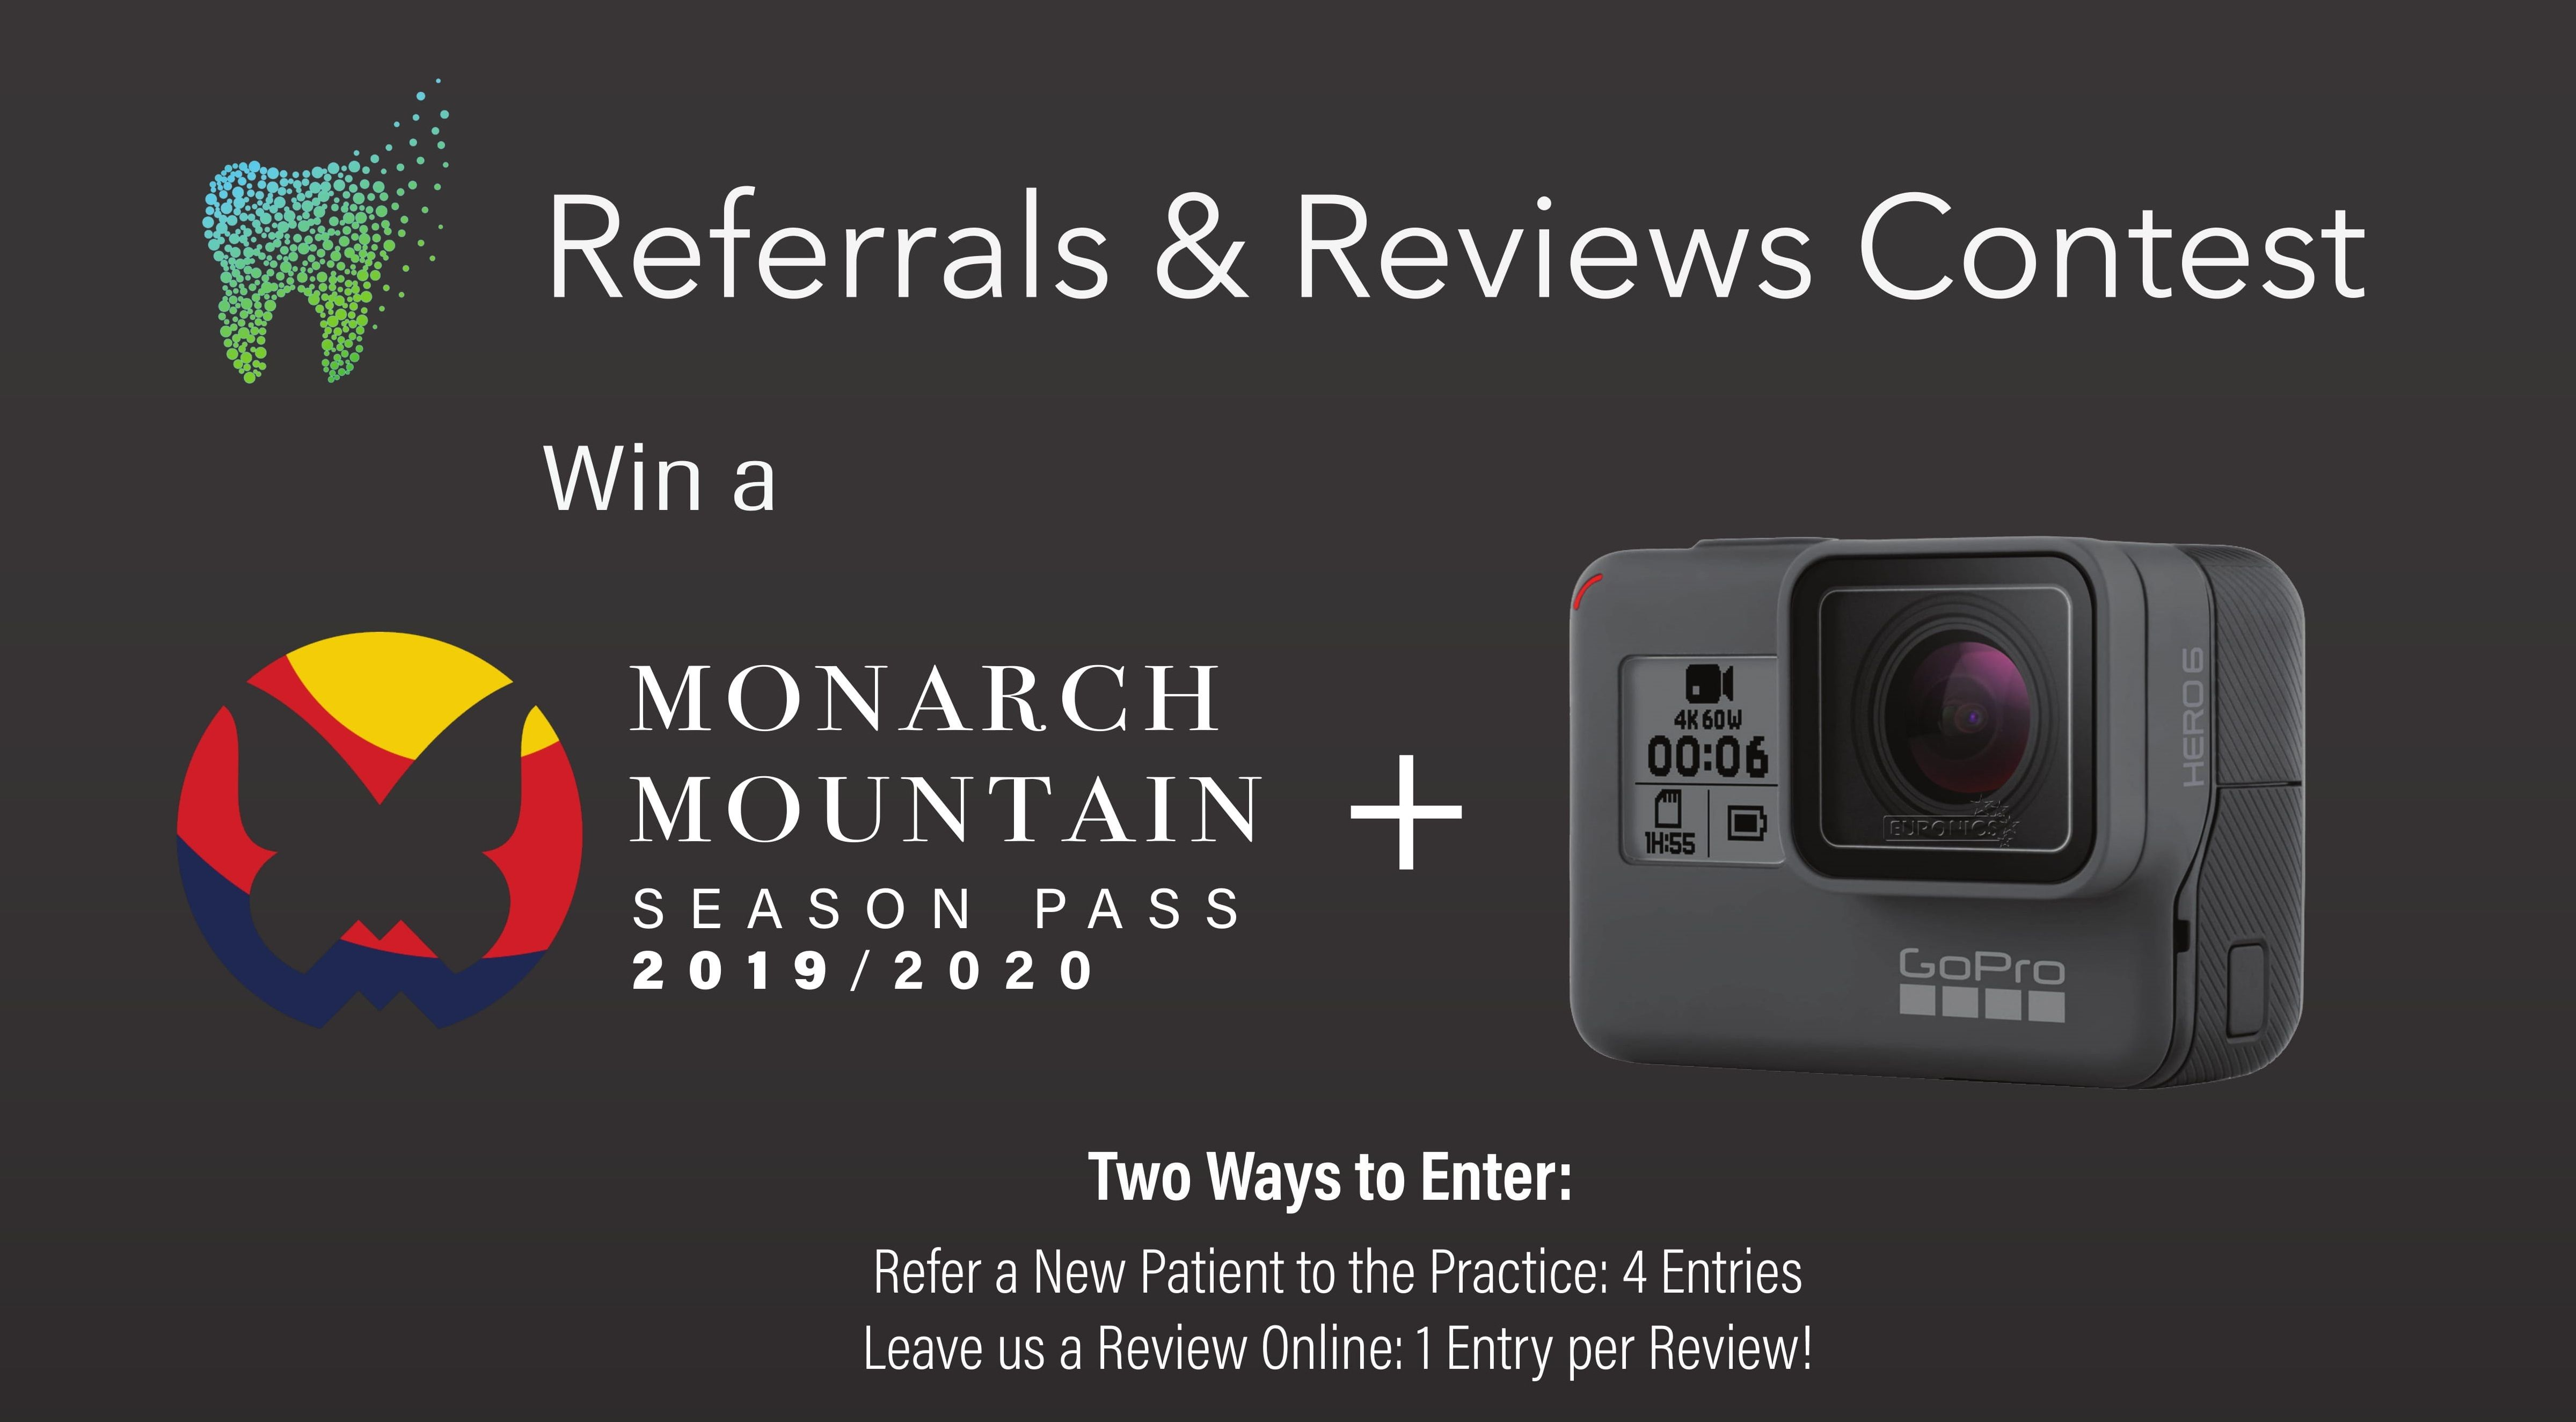 Salida: Monarch Mountain Season Pass  and a GoPro Giveaway